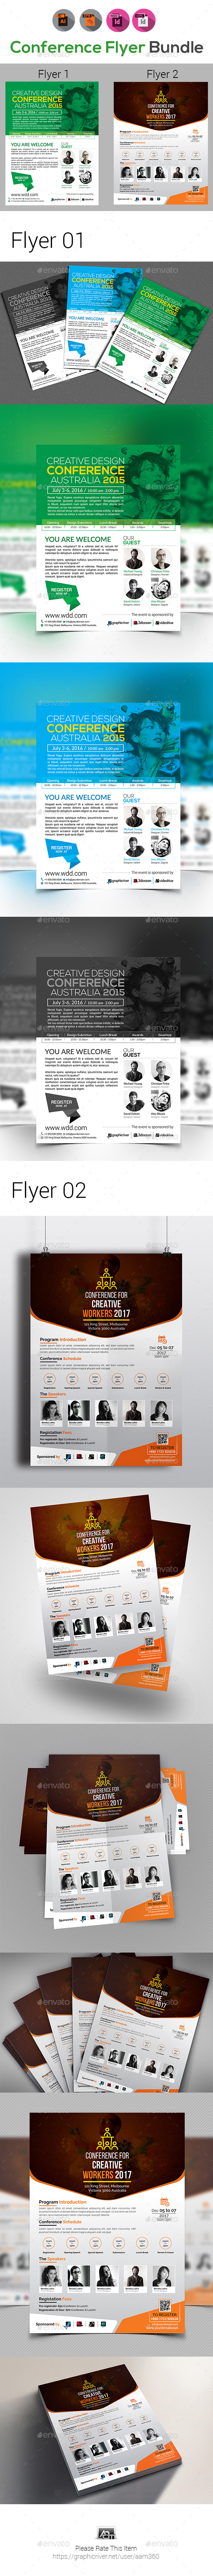 Event Summit Conference Flyer Templates - Corporate Flyers